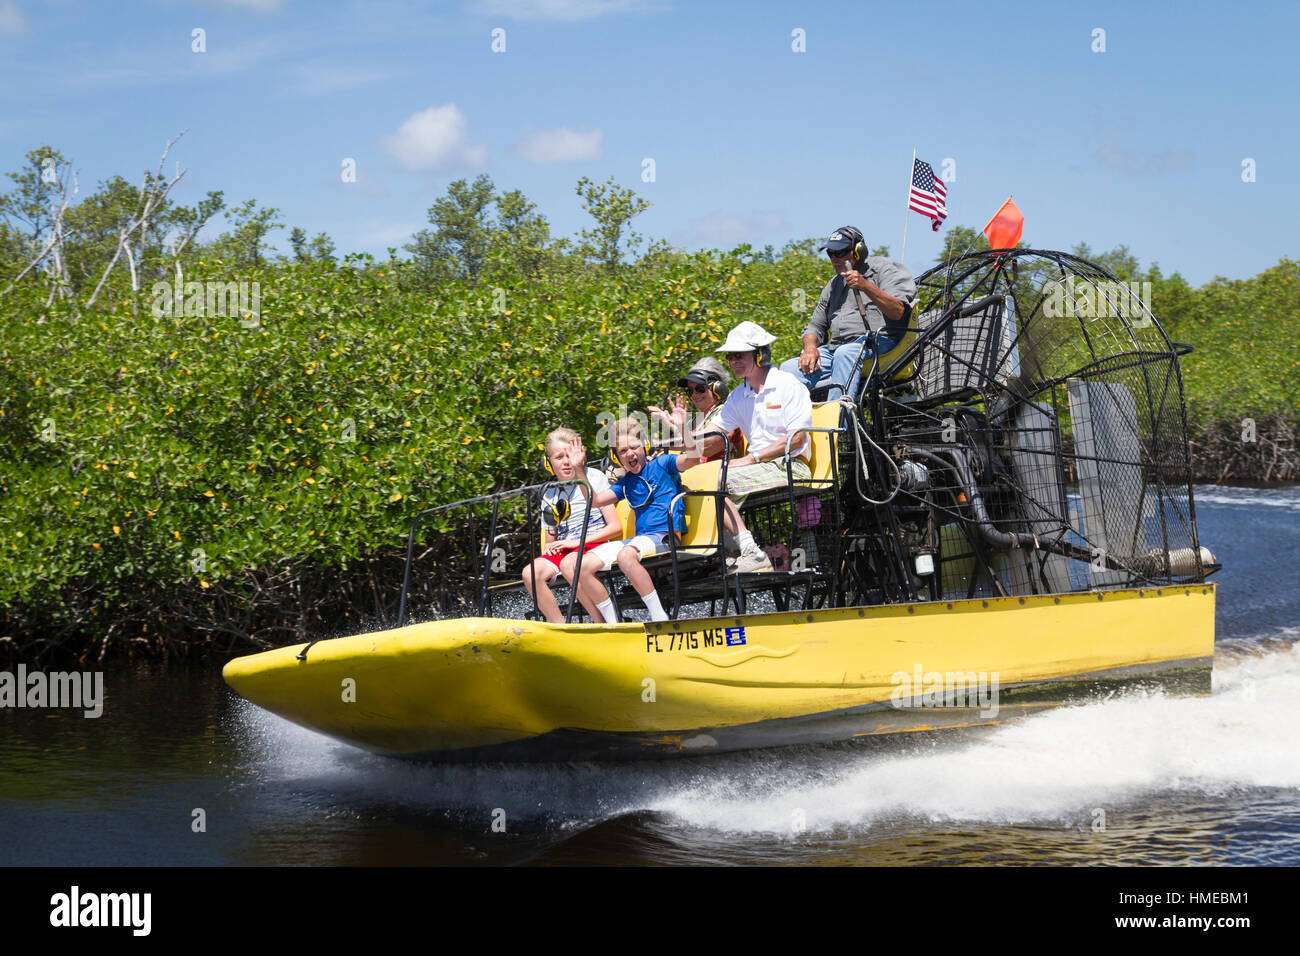 Airboat ride in the Florida Everglades Stock Photo